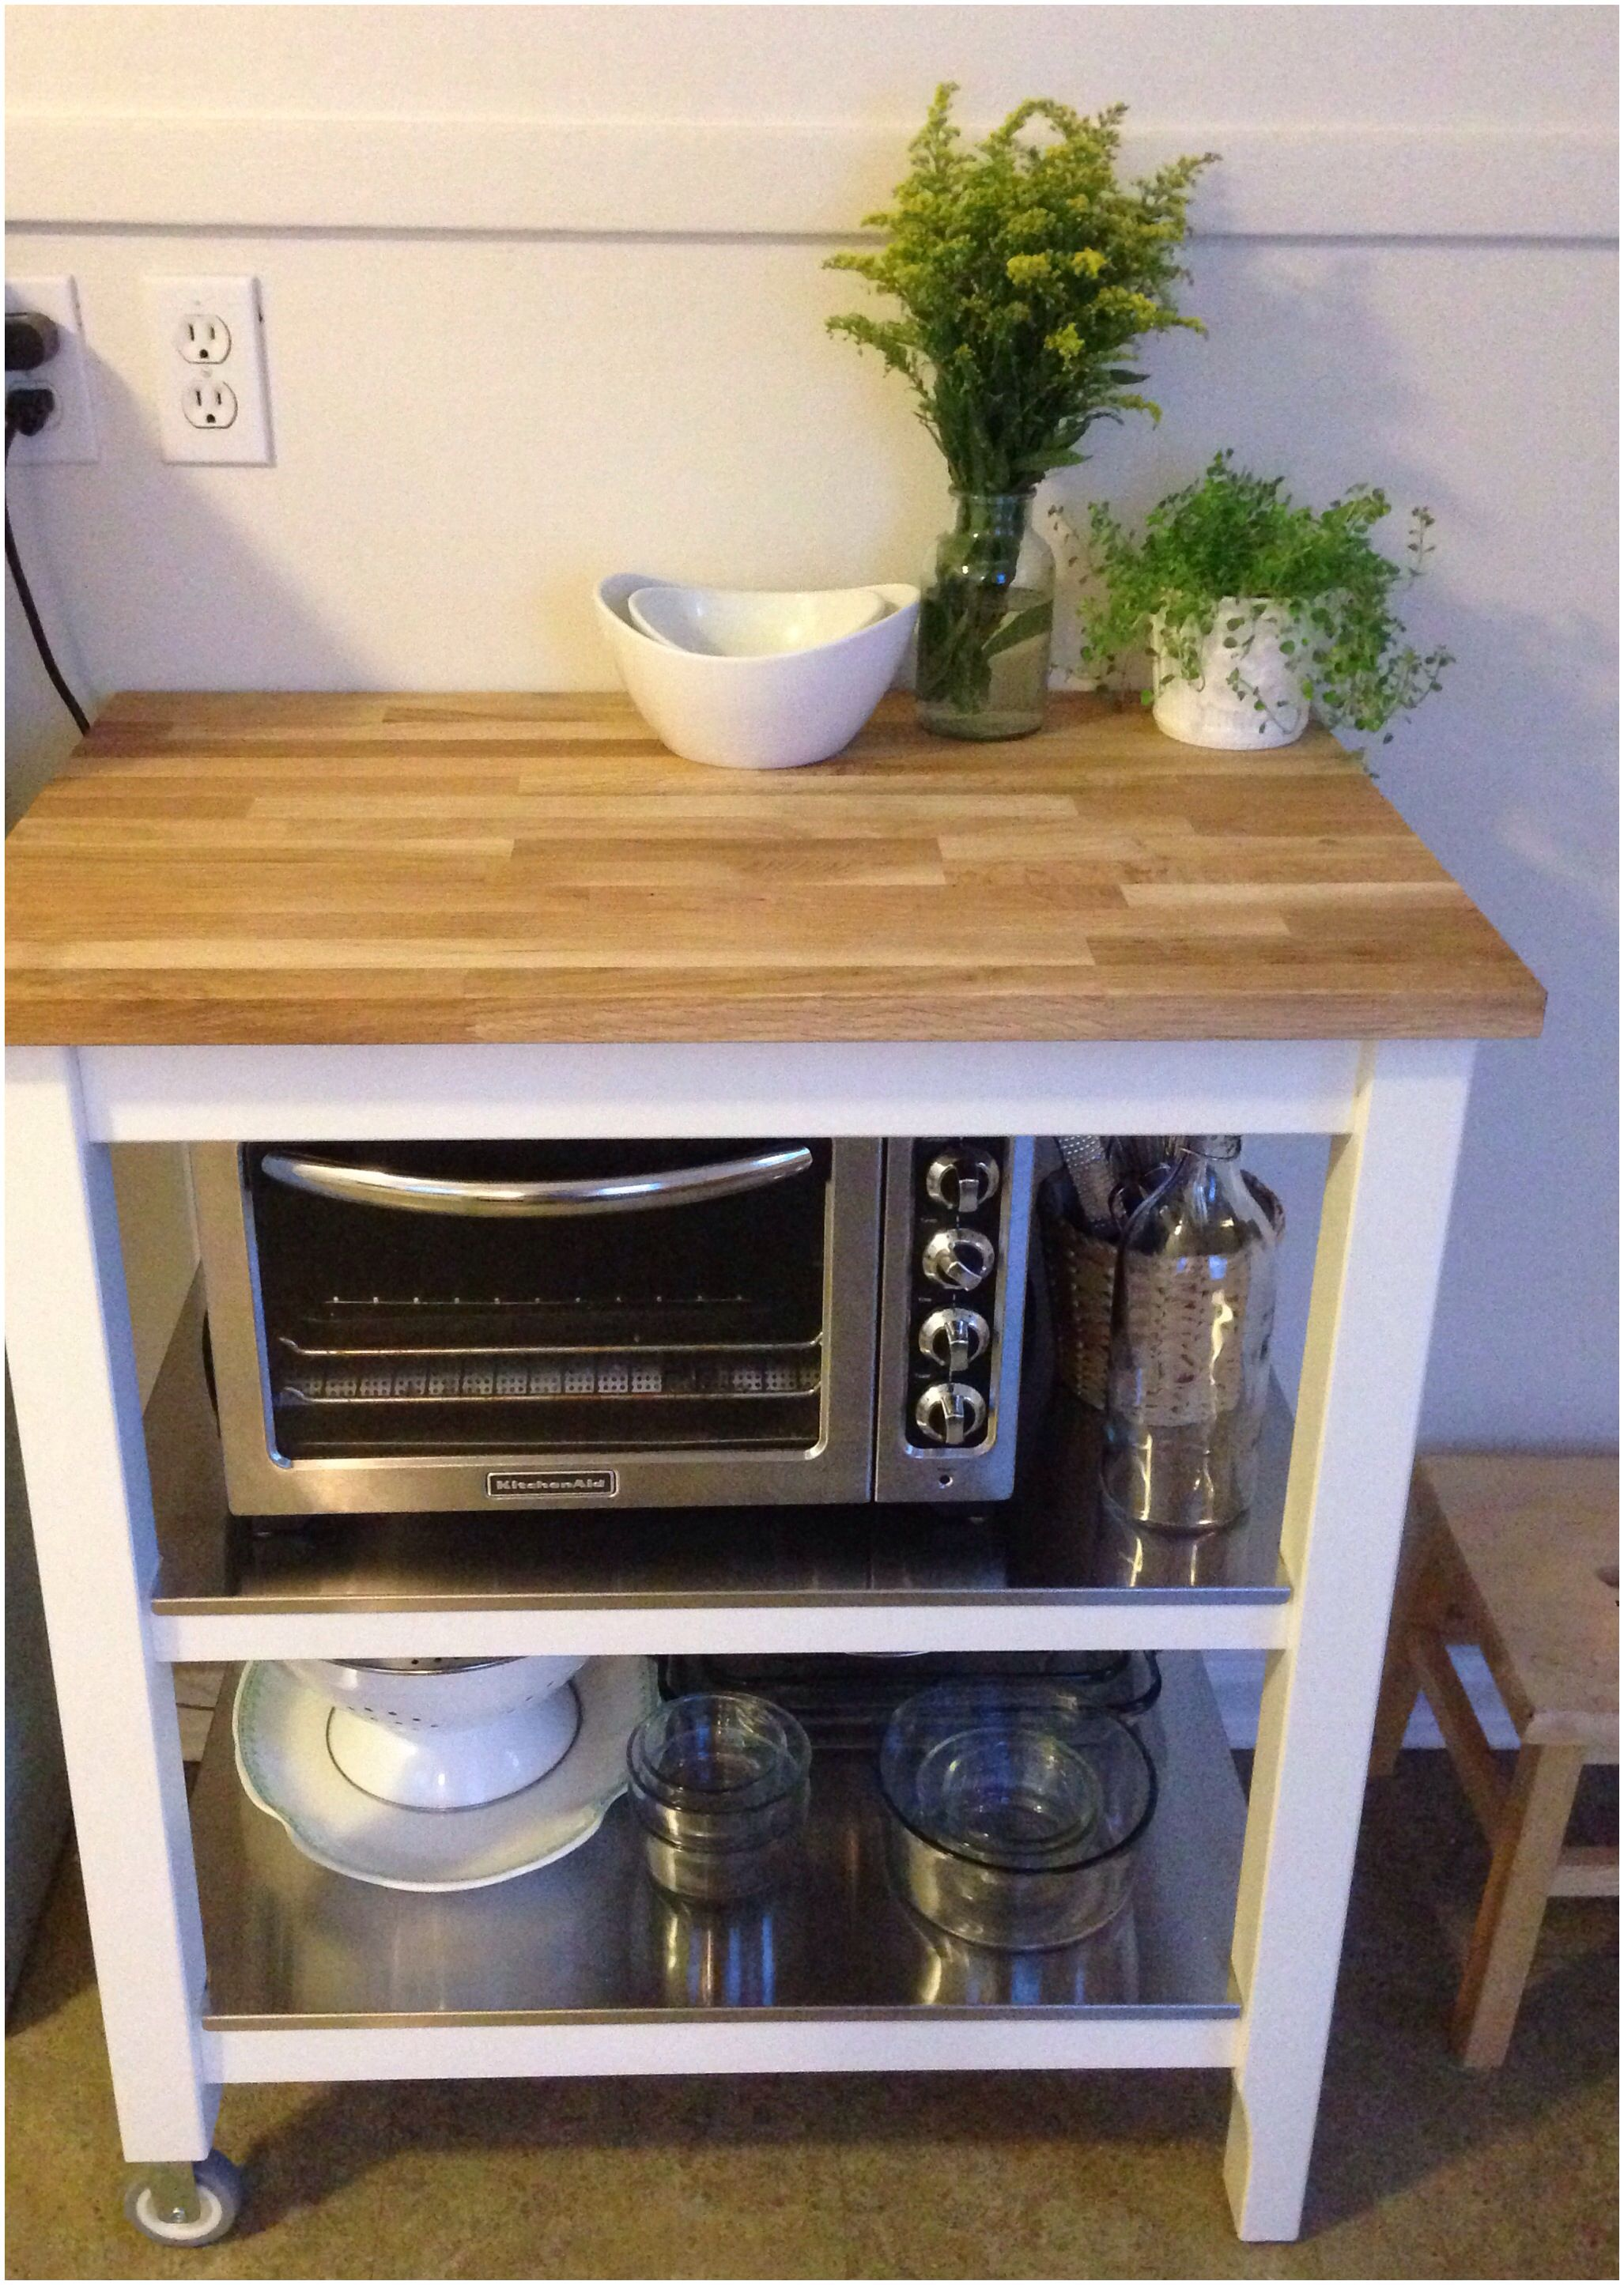 Delicieux My New Ikea Stenstorp Kitchen Cart Is Everything I Dreamed And More. More  Microwave Stand